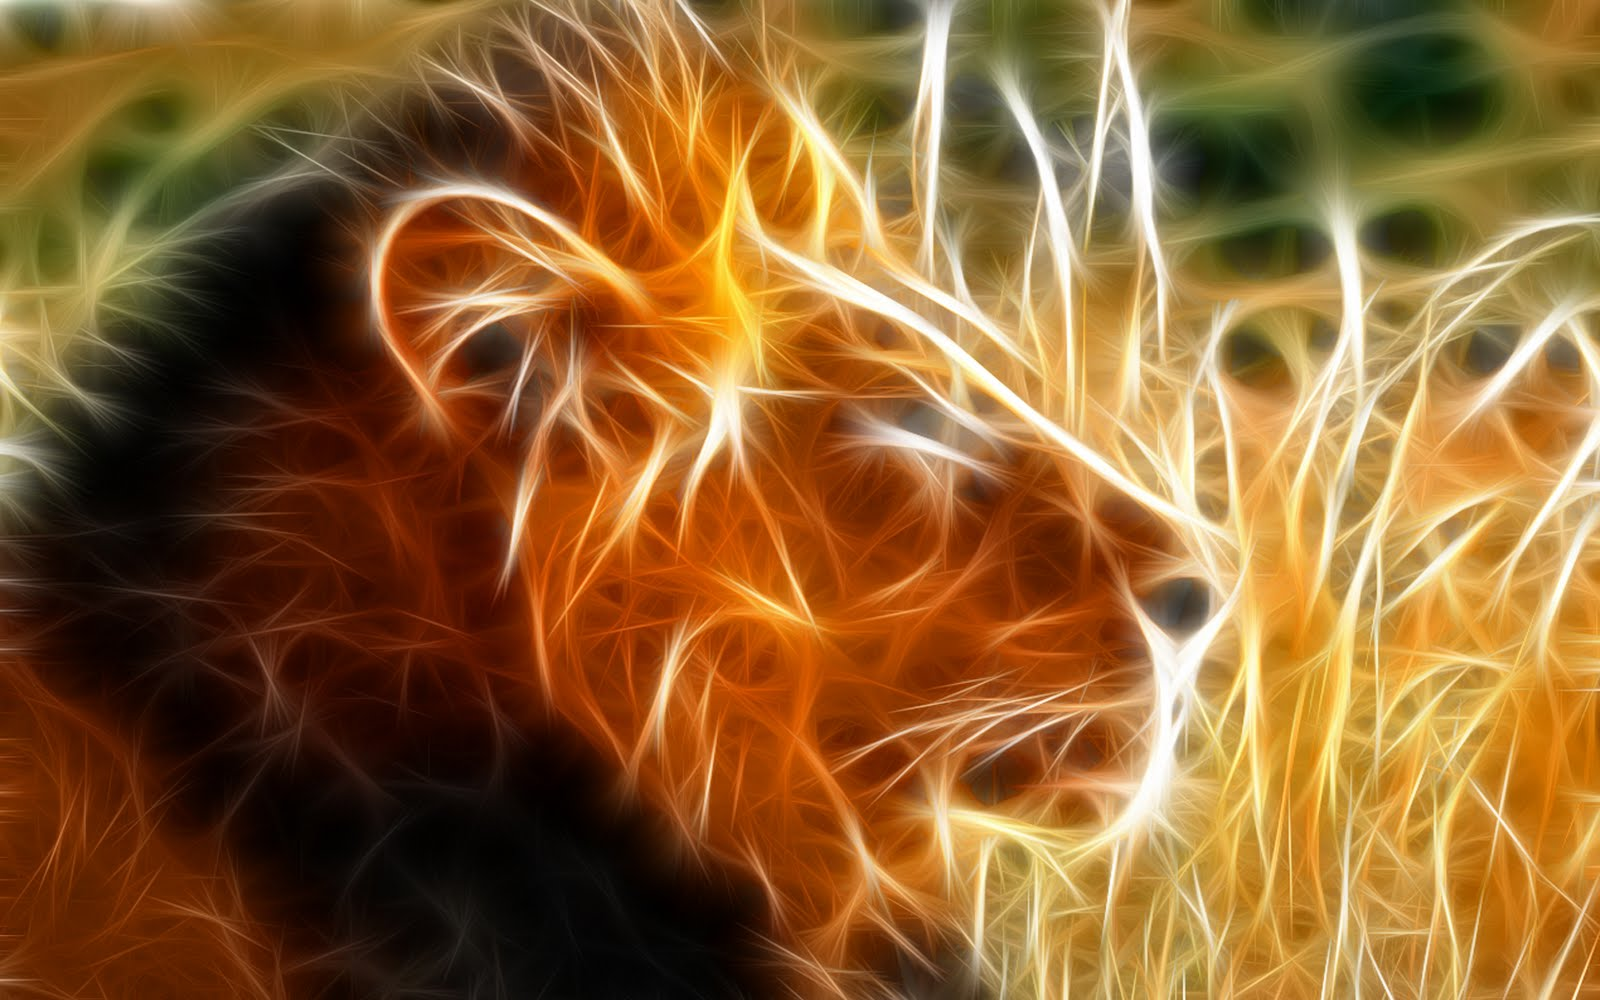 http://3.bp.blogspot.com/-Qxrarm3W_p0/TfDA843B0SI/AAAAAAAAAM4/fcfWlh4X7B0/s1600/The_King_lion_hd_wallpapers.jpg